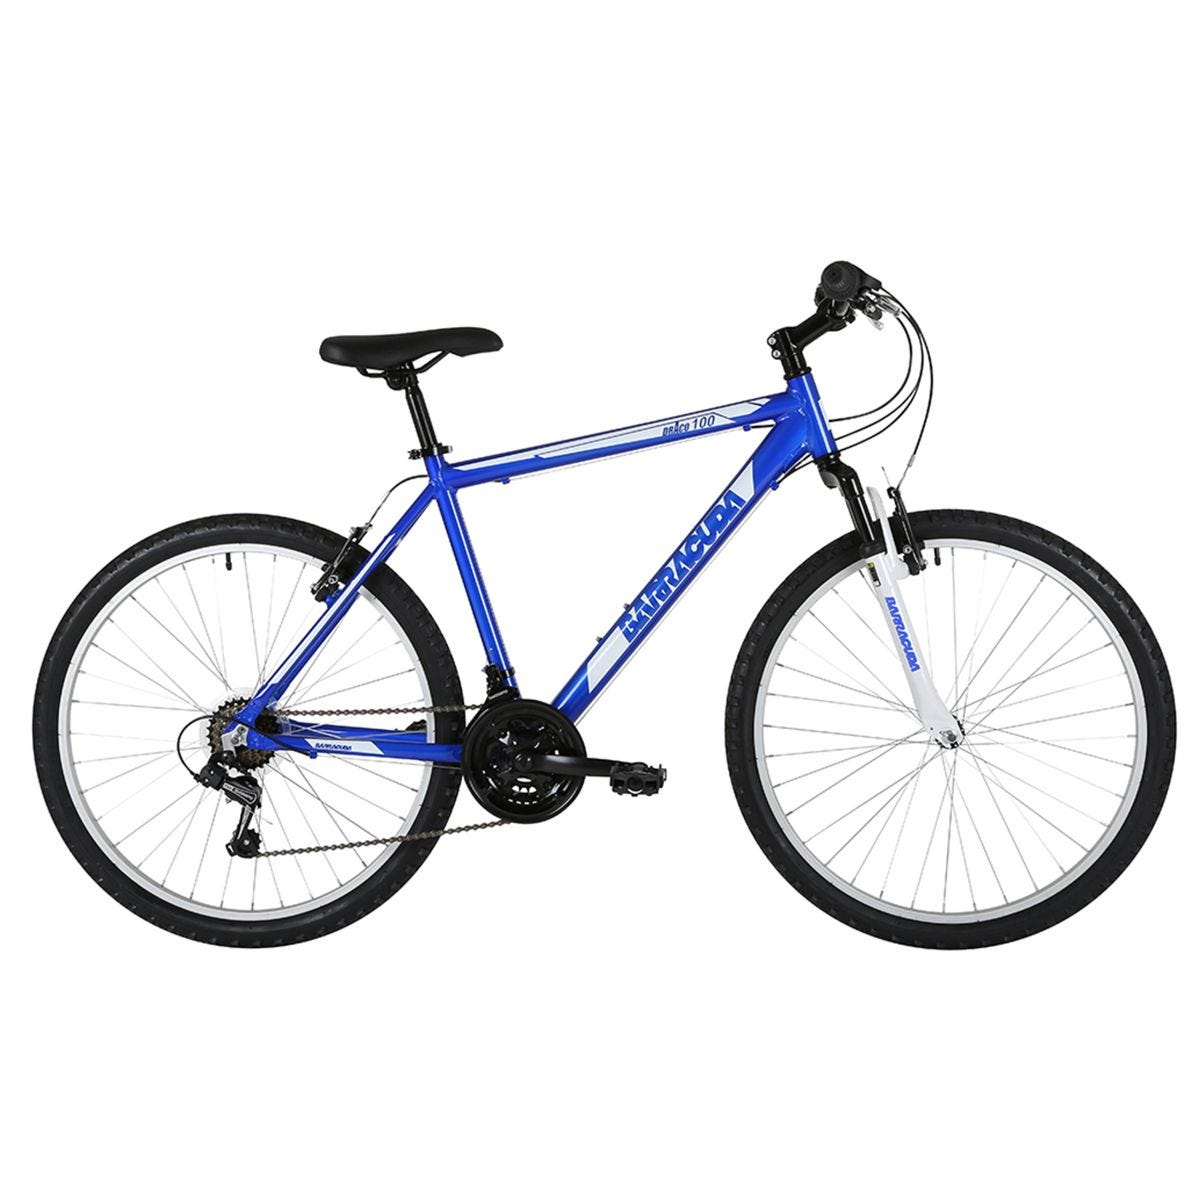 Barracuda Draco Men's Mountain Bike - Blue